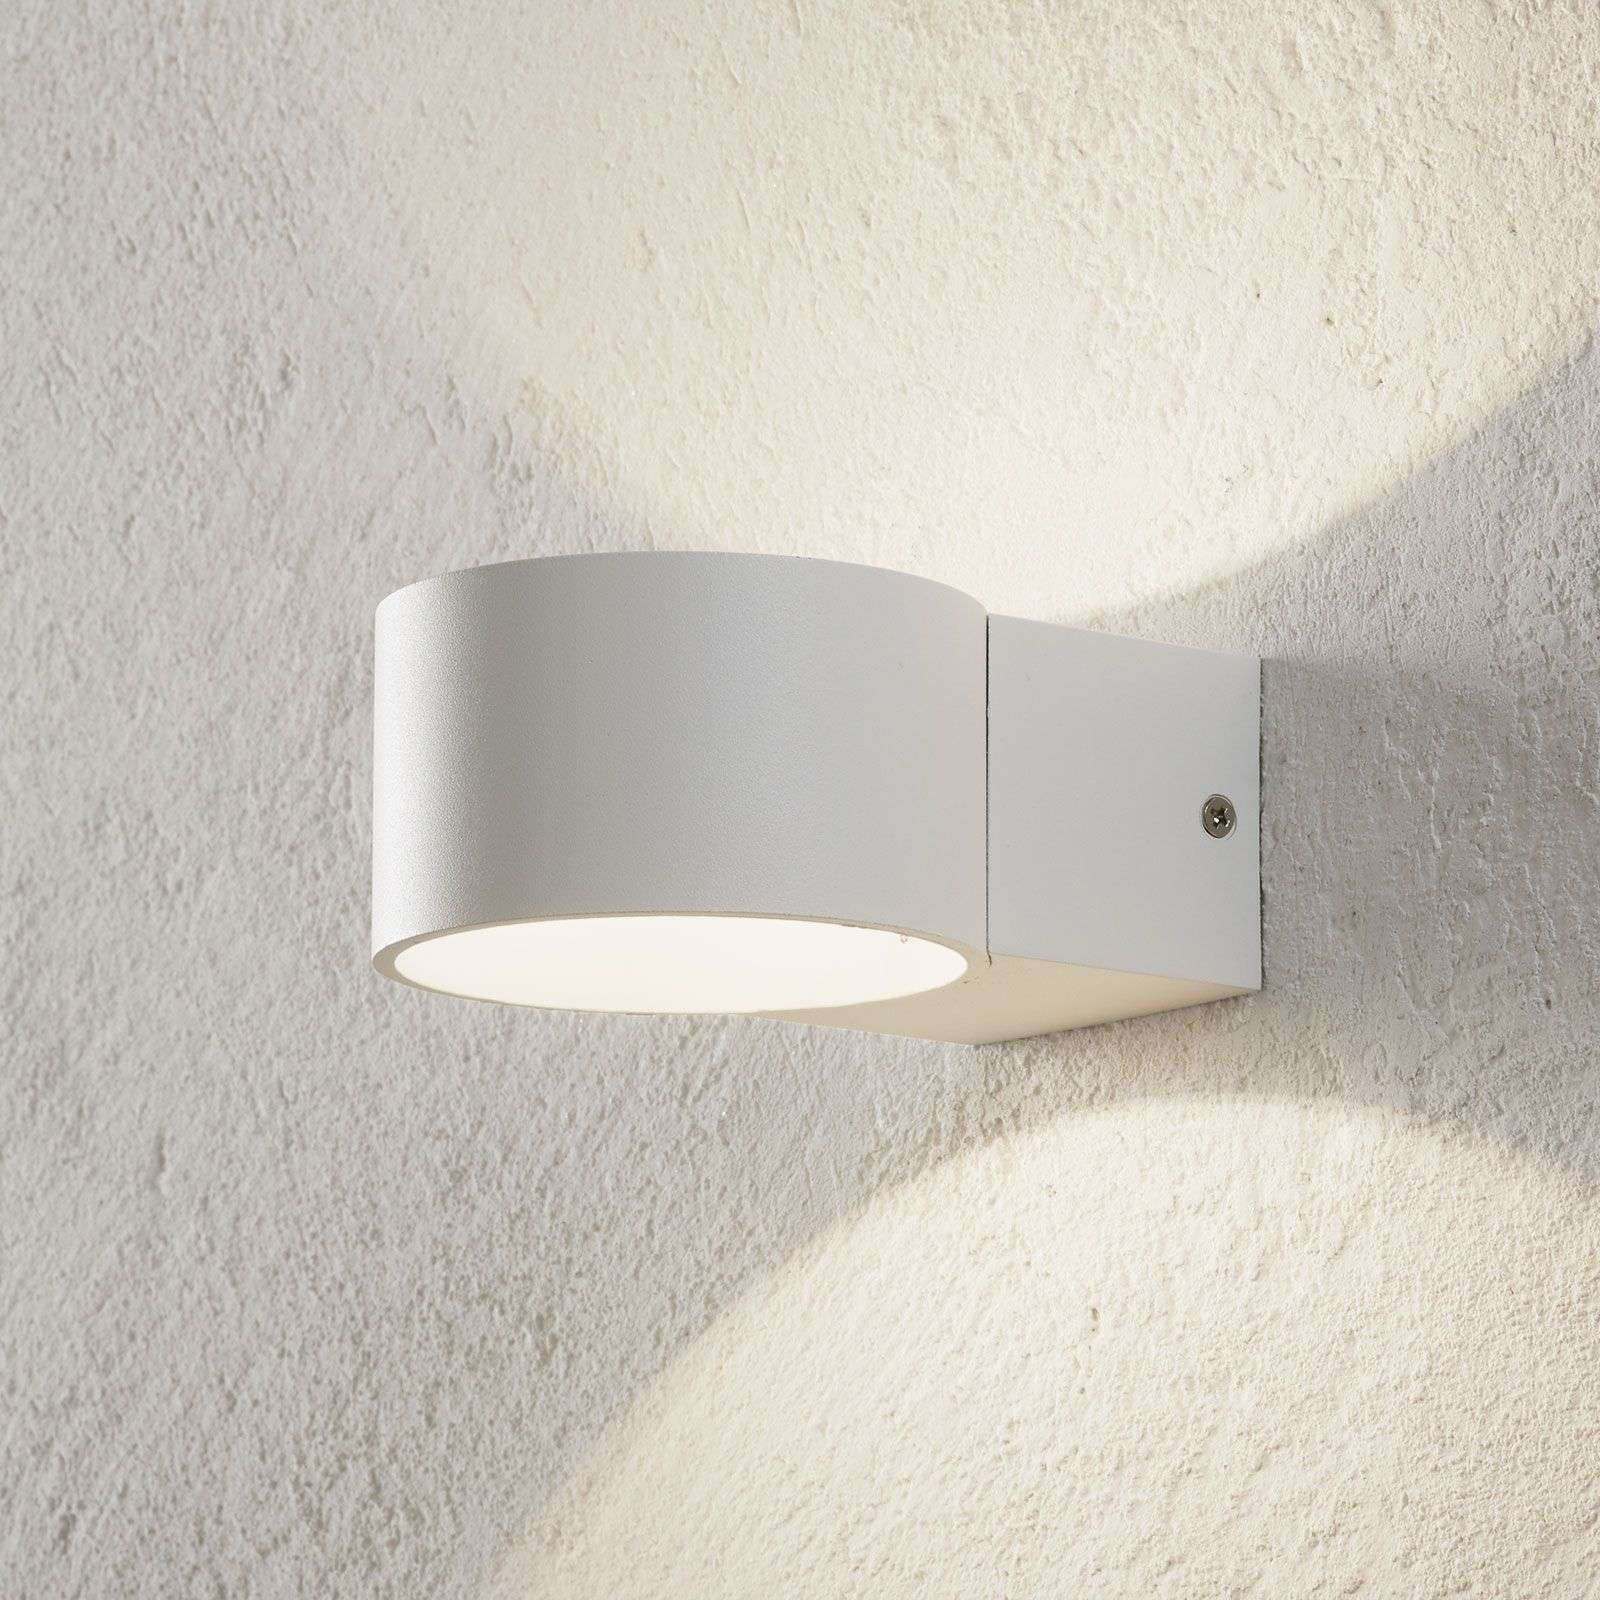 Led-wandleuchte lacapo hohe und niedrige diffusions